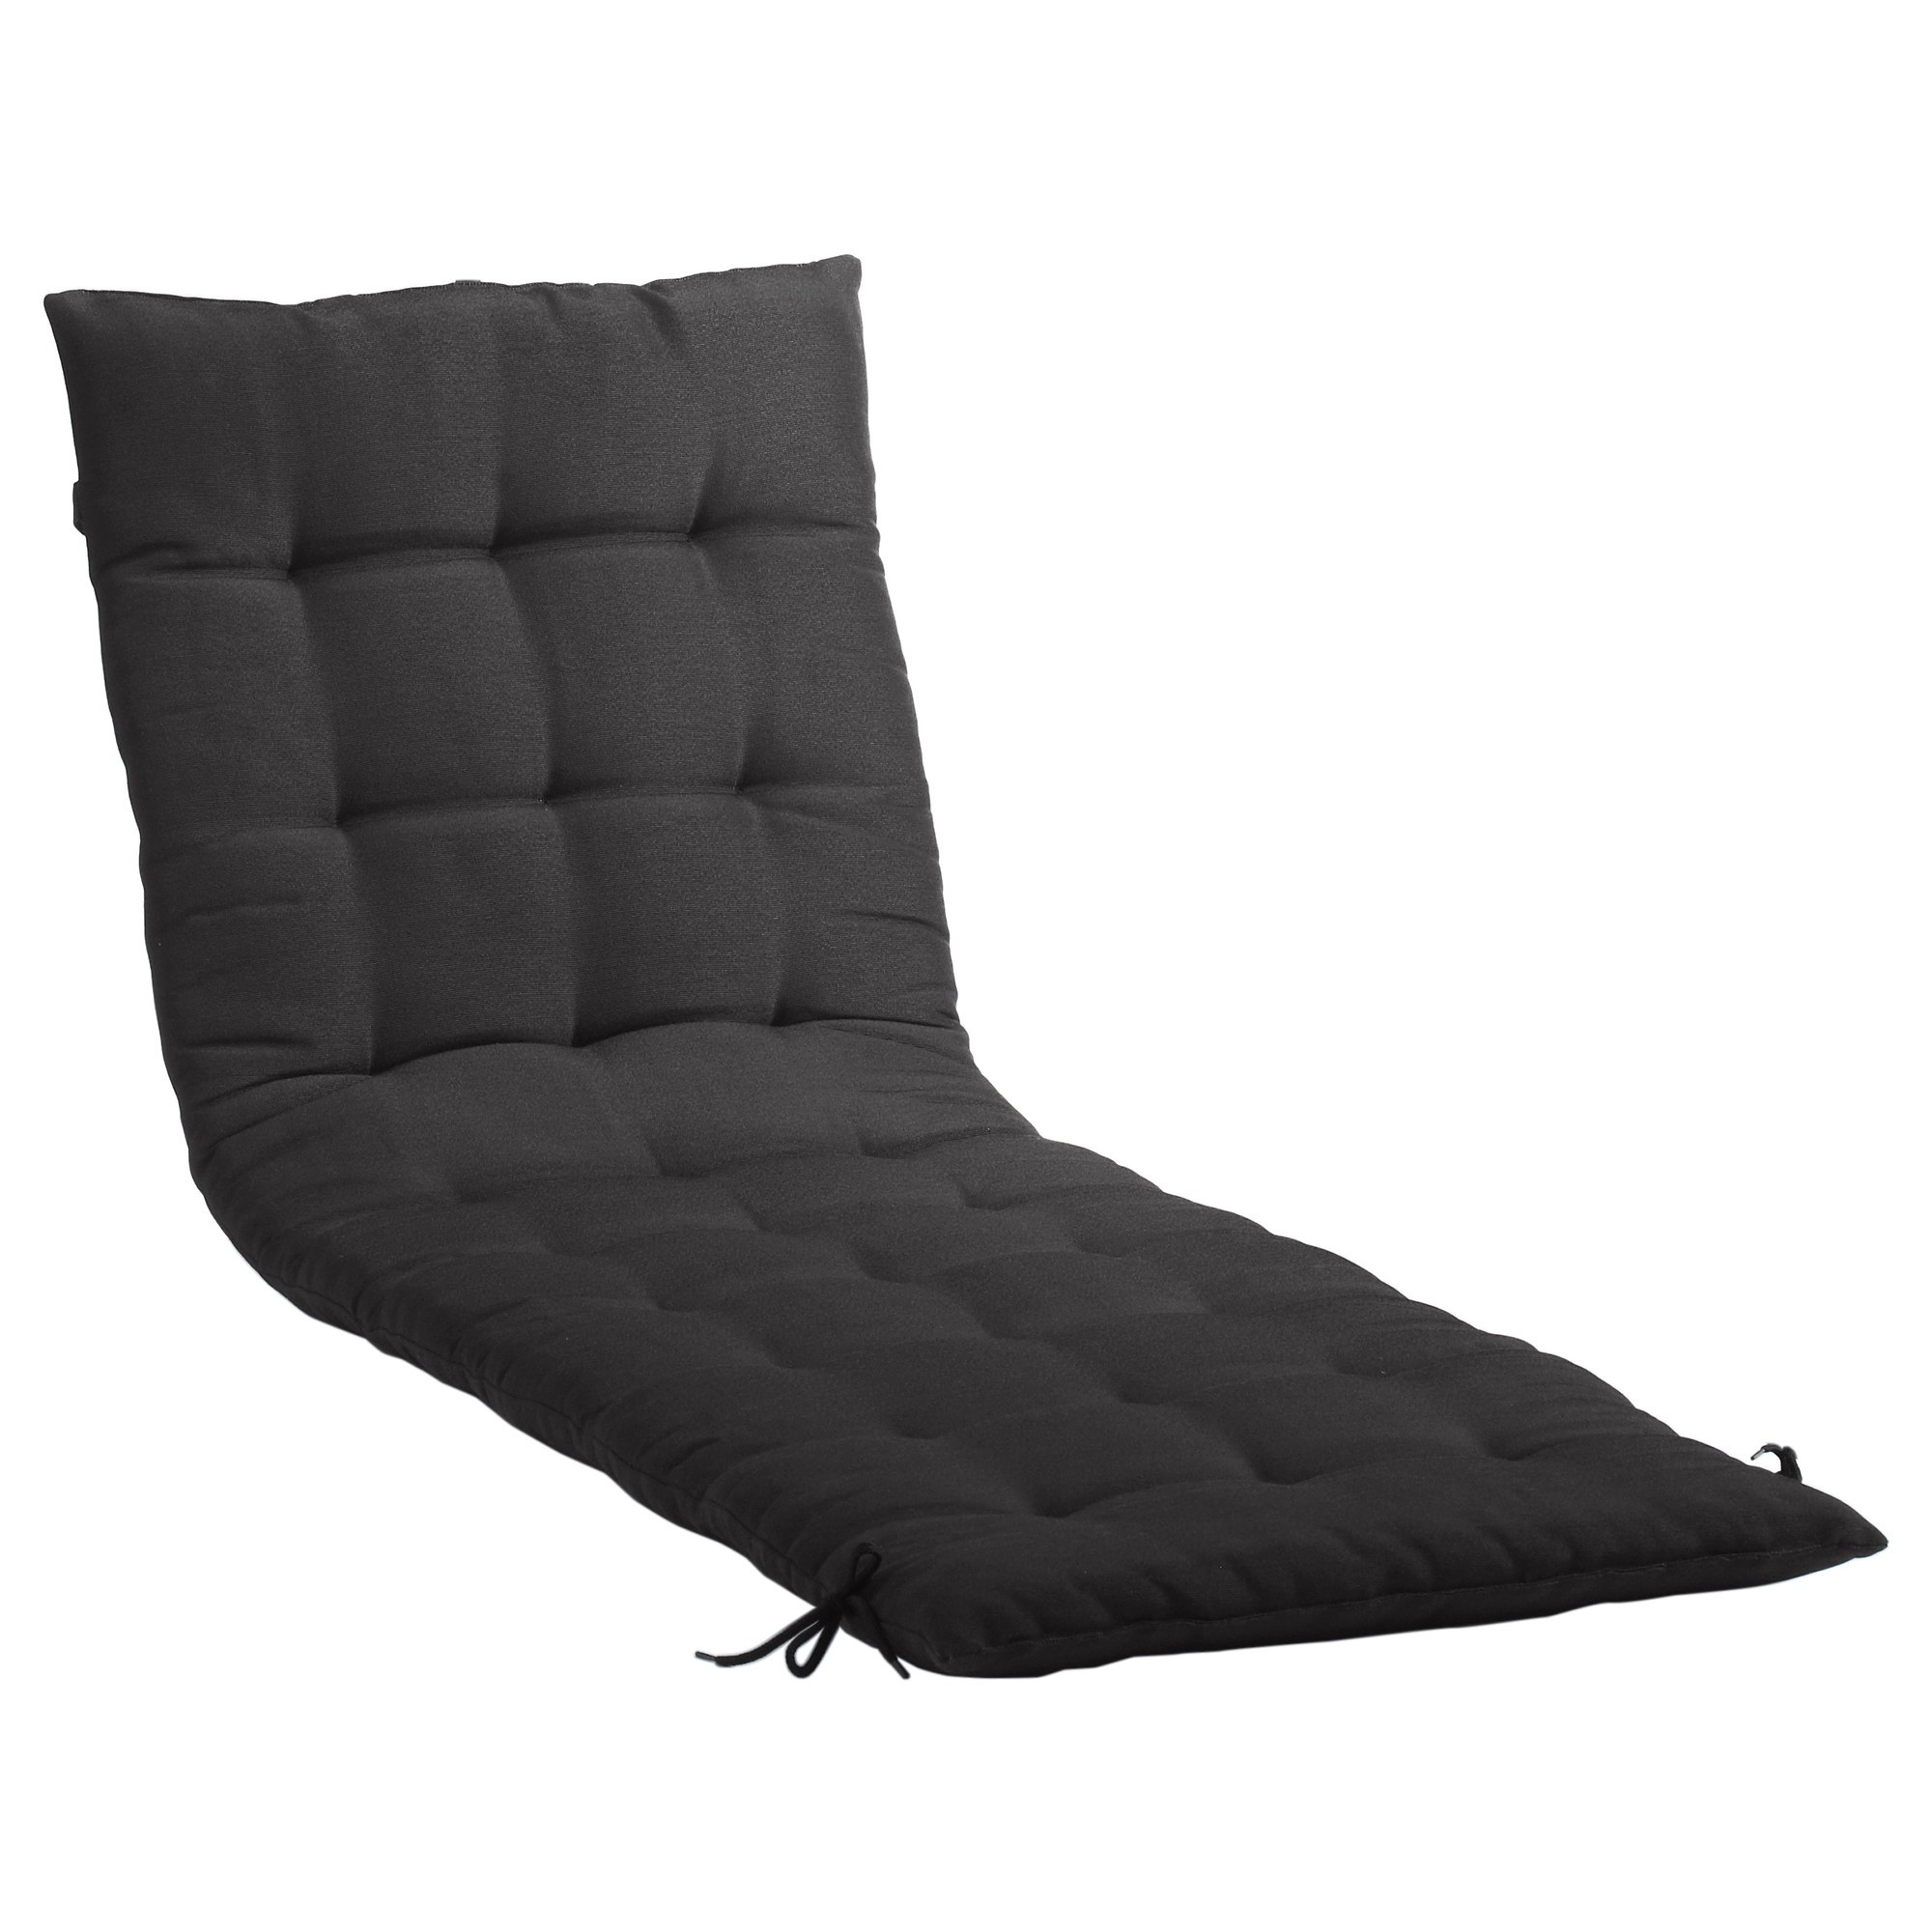 ikea coussin de chaise interesting chaises de cuisine ikea leifarne chaise coussin de chaise de. Black Bedroom Furniture Sets. Home Design Ideas